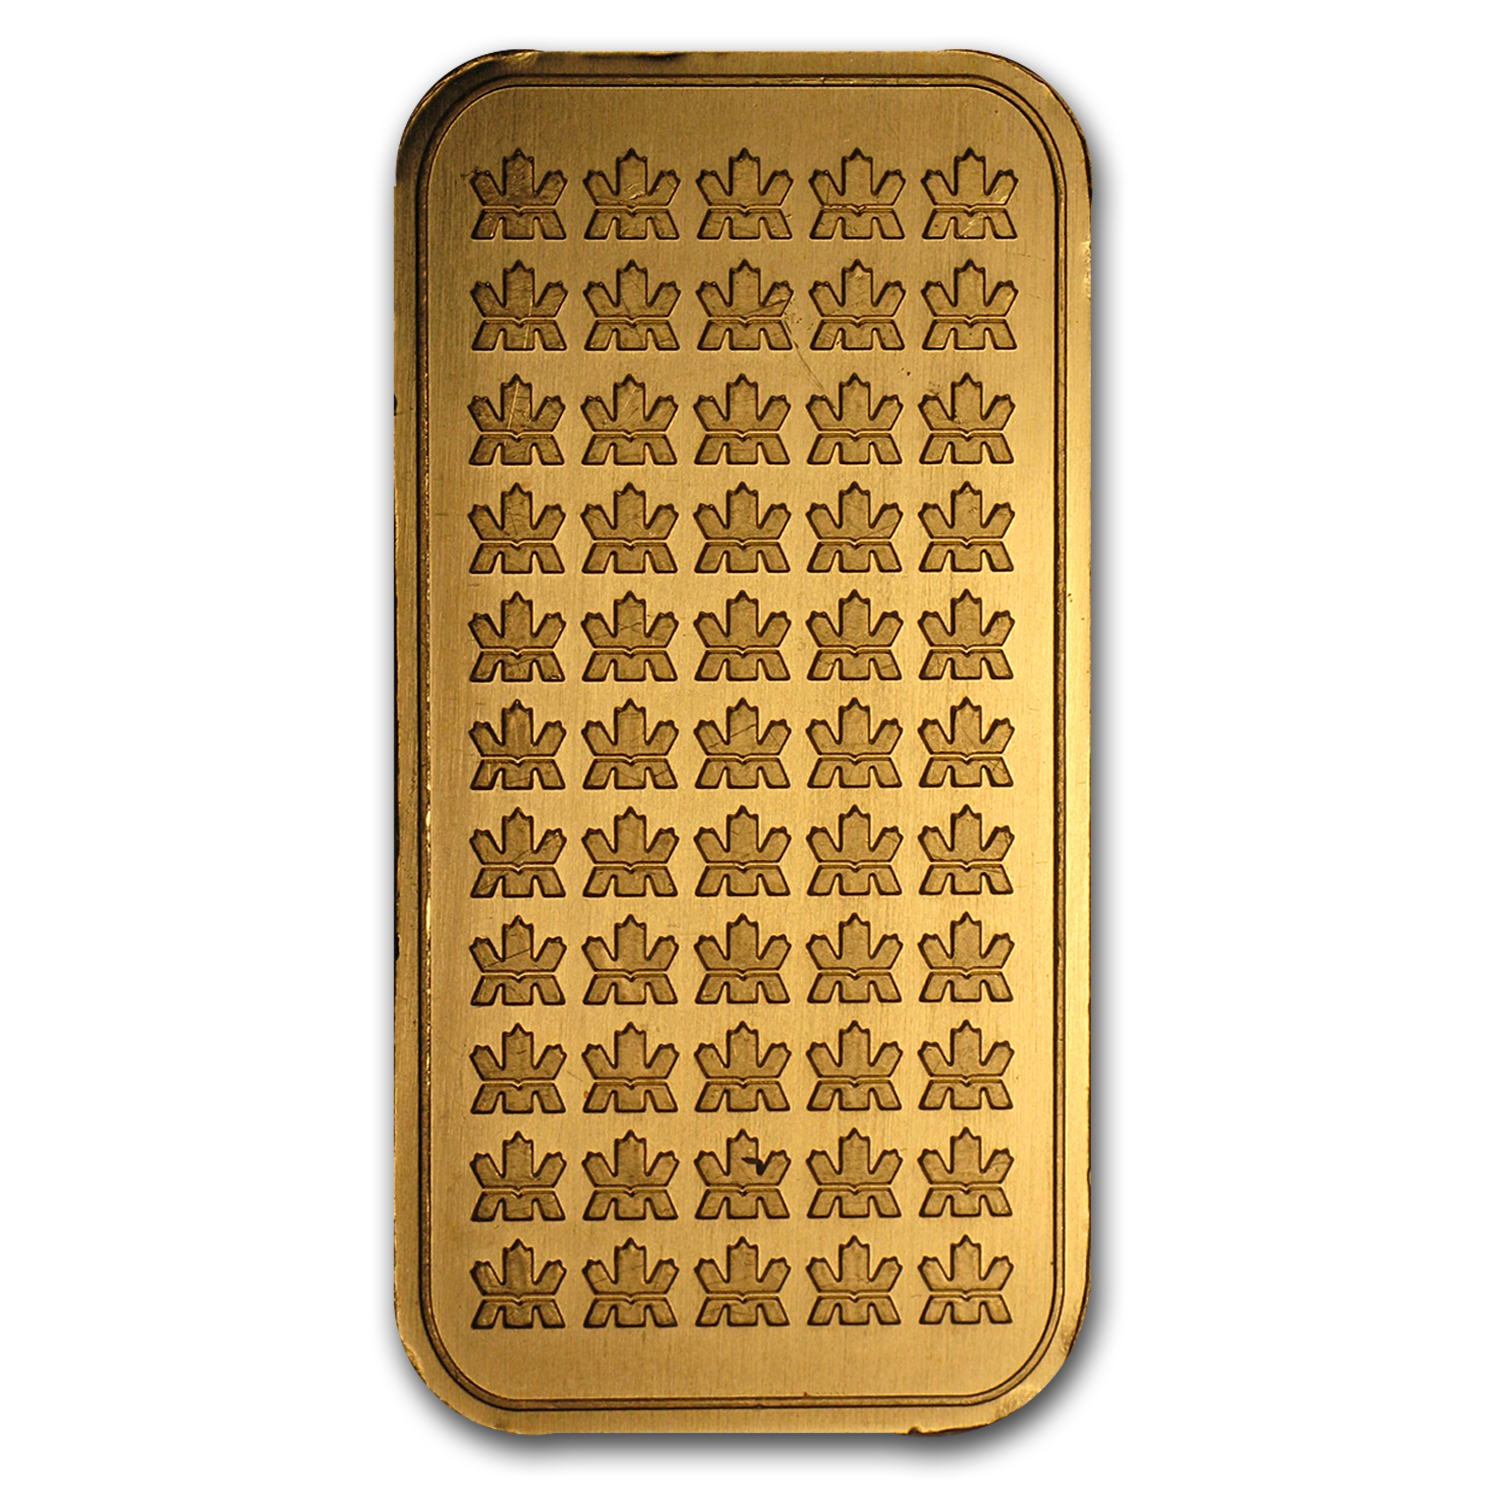 5 oz Gold Bar - Royal Canadian Mint RCM